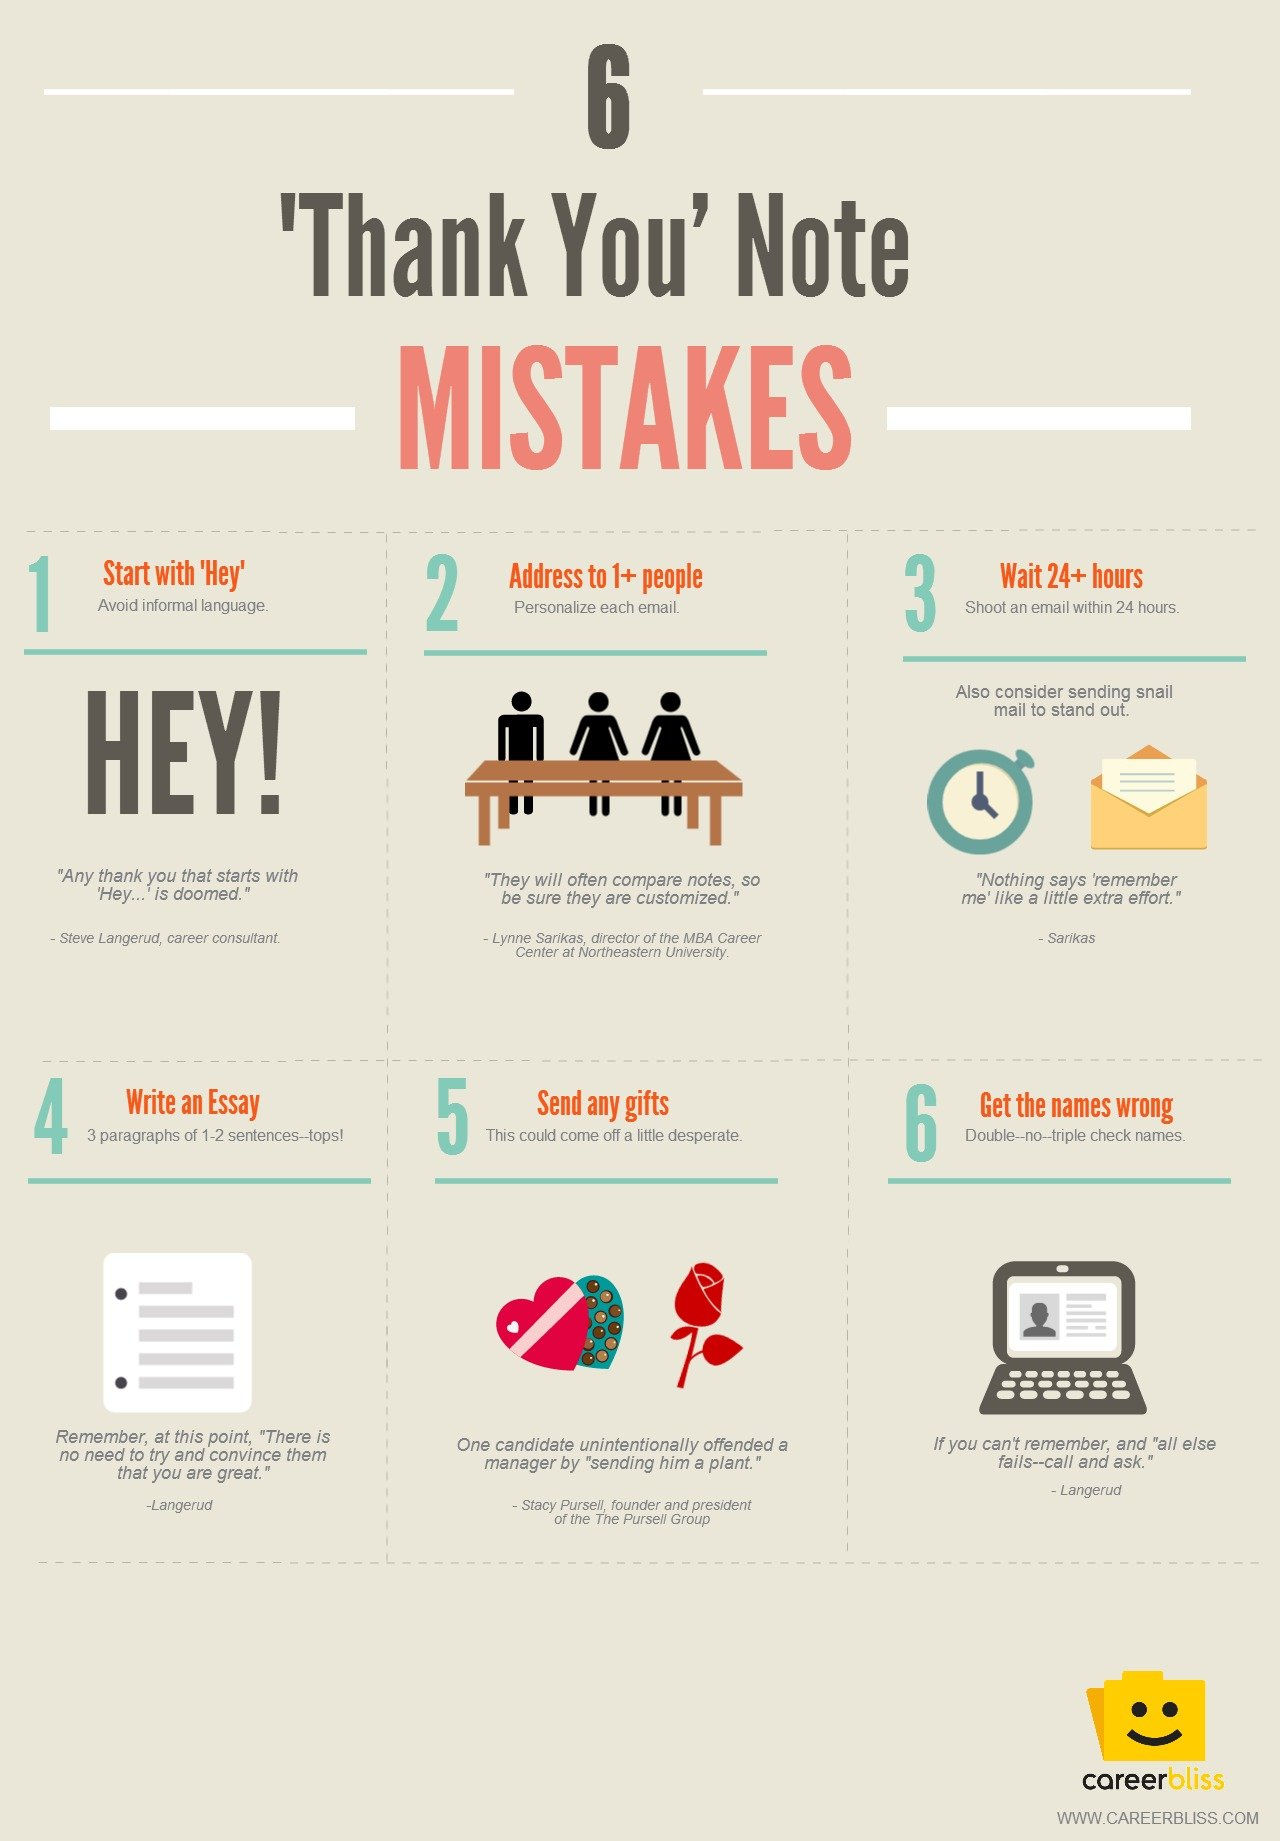 6 thank you note mistakes to avoid after an interview the muse infographic courtesy of careerbliss photo of thank you note courtesy of shutterstock